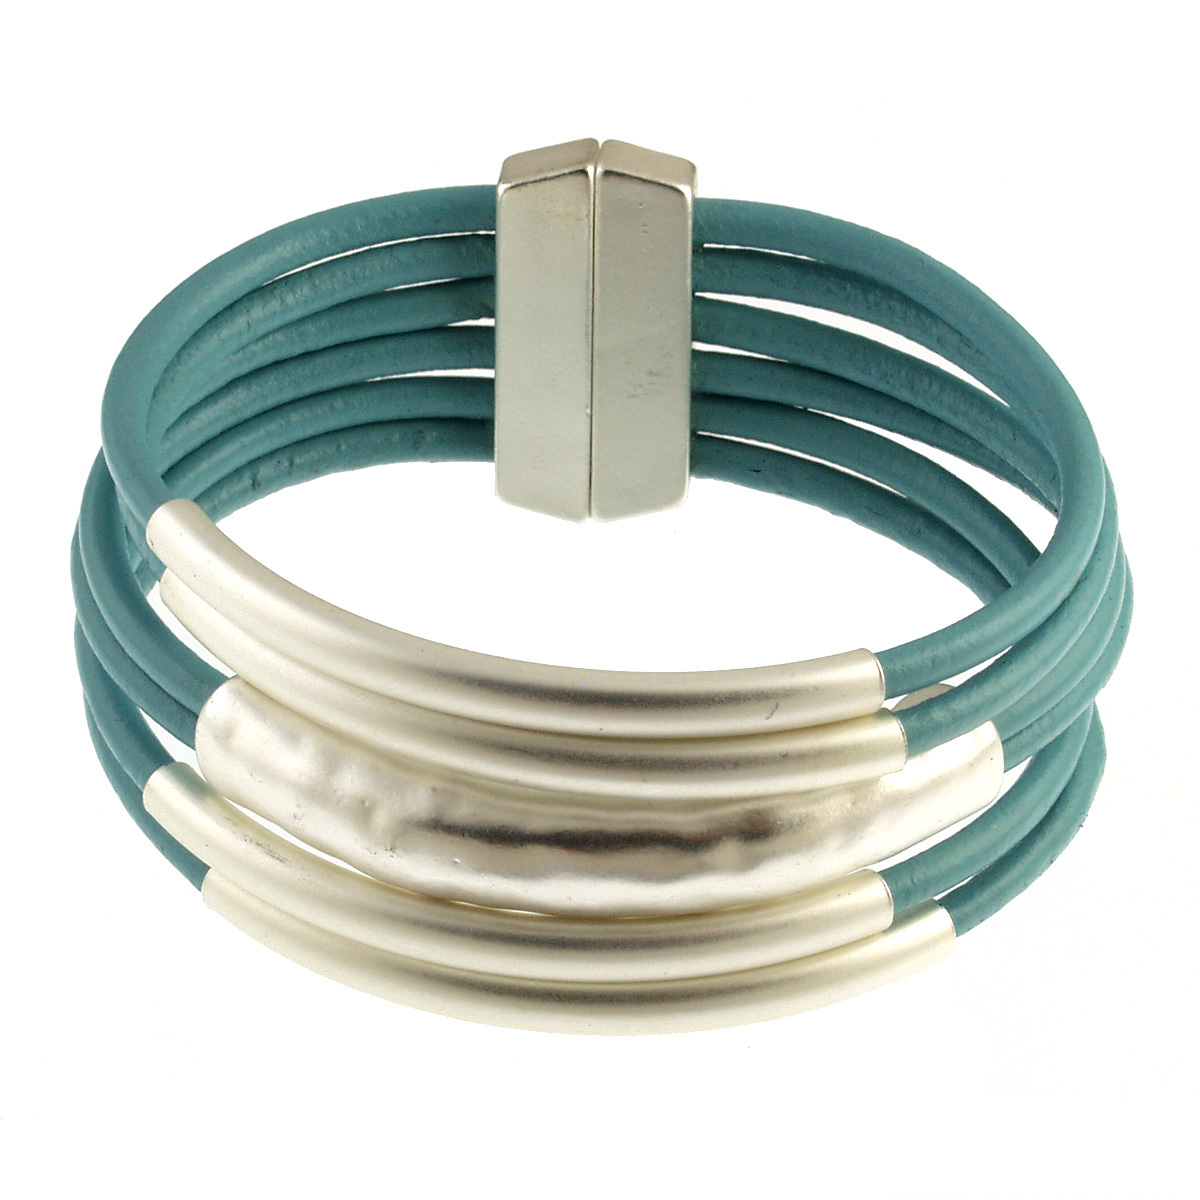 ORIGIN JEWELRY: MAGNETIC LEATHER TUBE BRACELET,6105-5